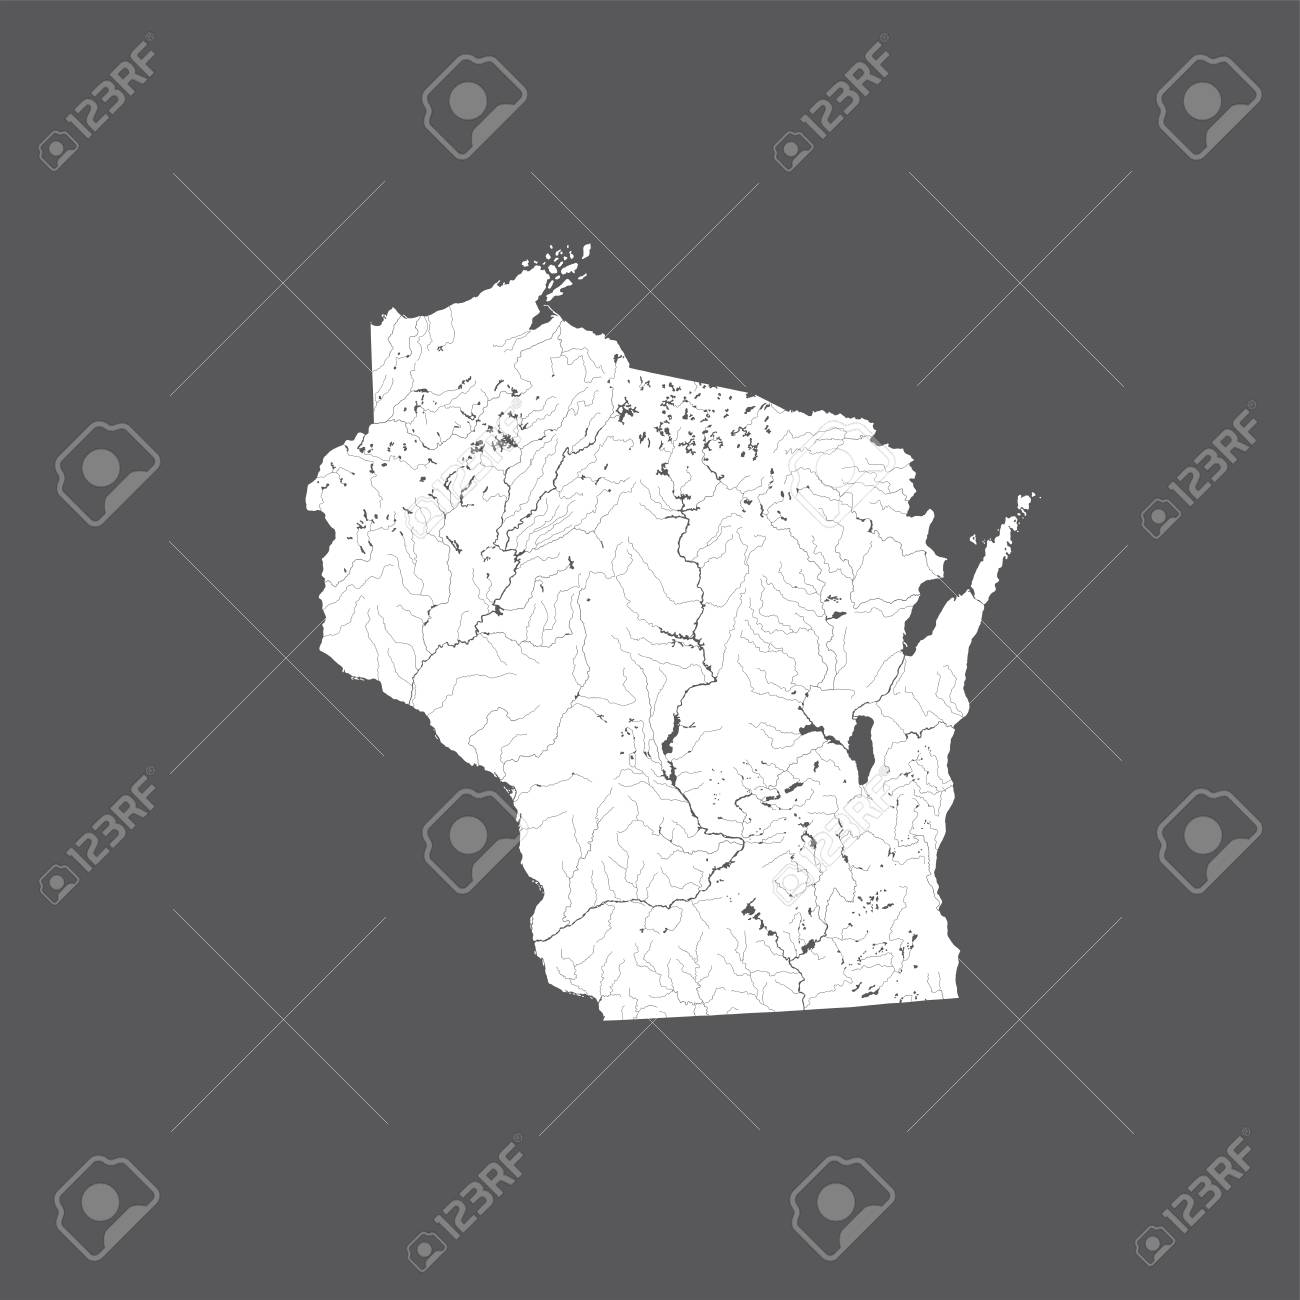 Us States Map Of Wisconsin Hand Made Rivers And Lakes Are - Map-of-the-us-rivers-and-lakes